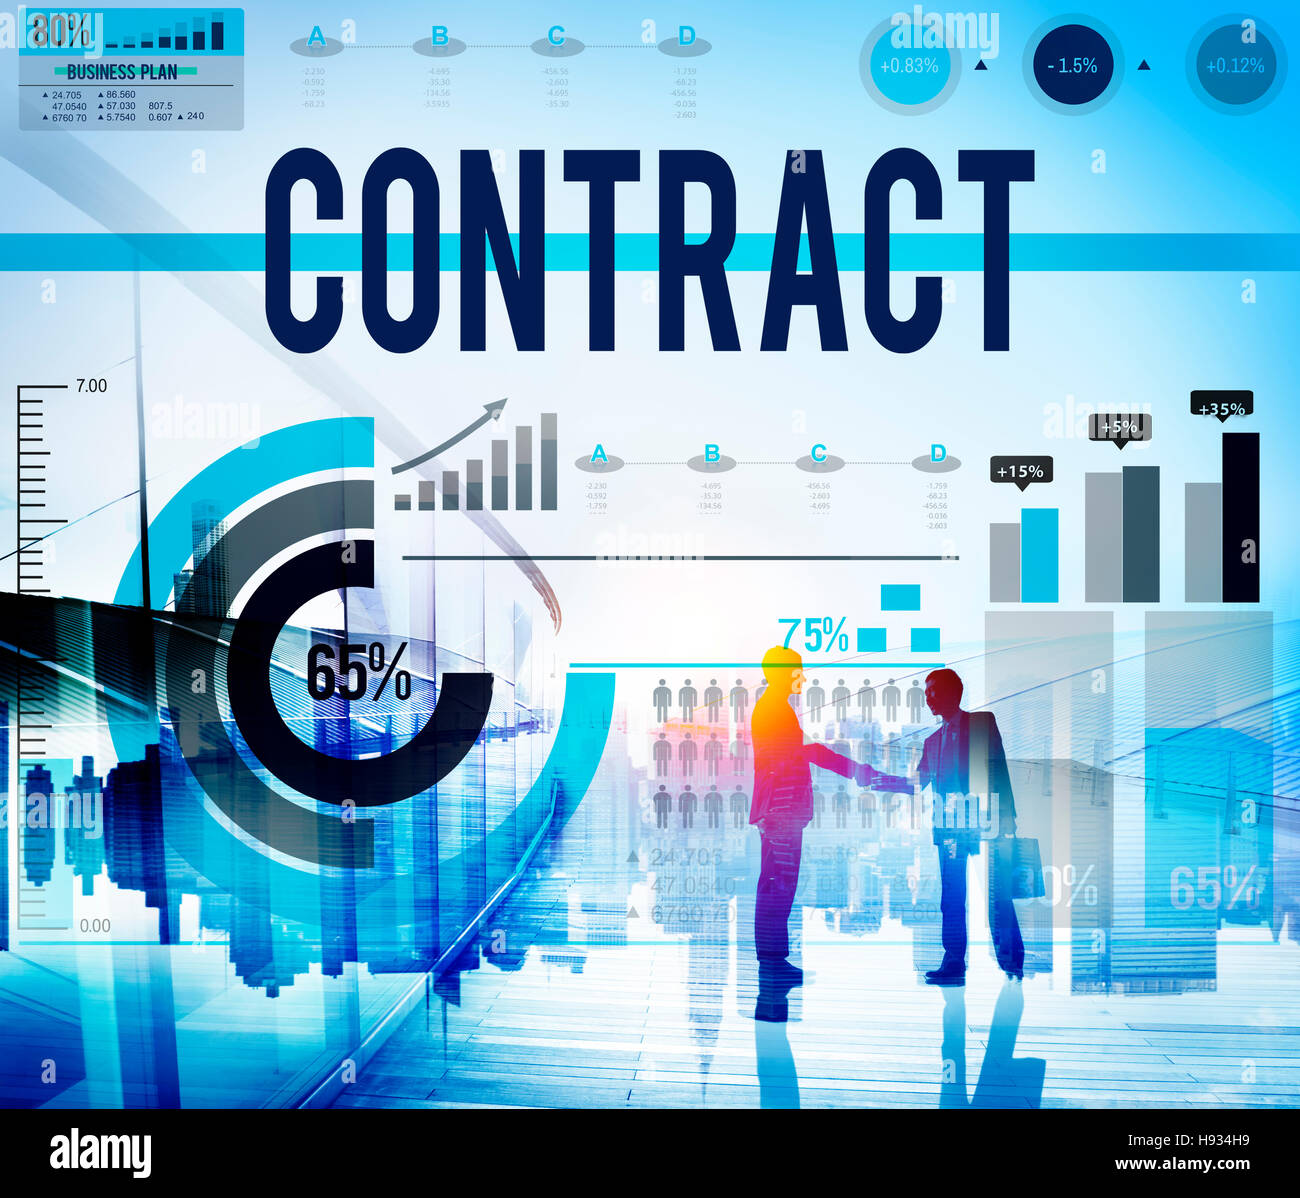 Contract Agreement Deal Bargain Partnership Concept - Stock Image